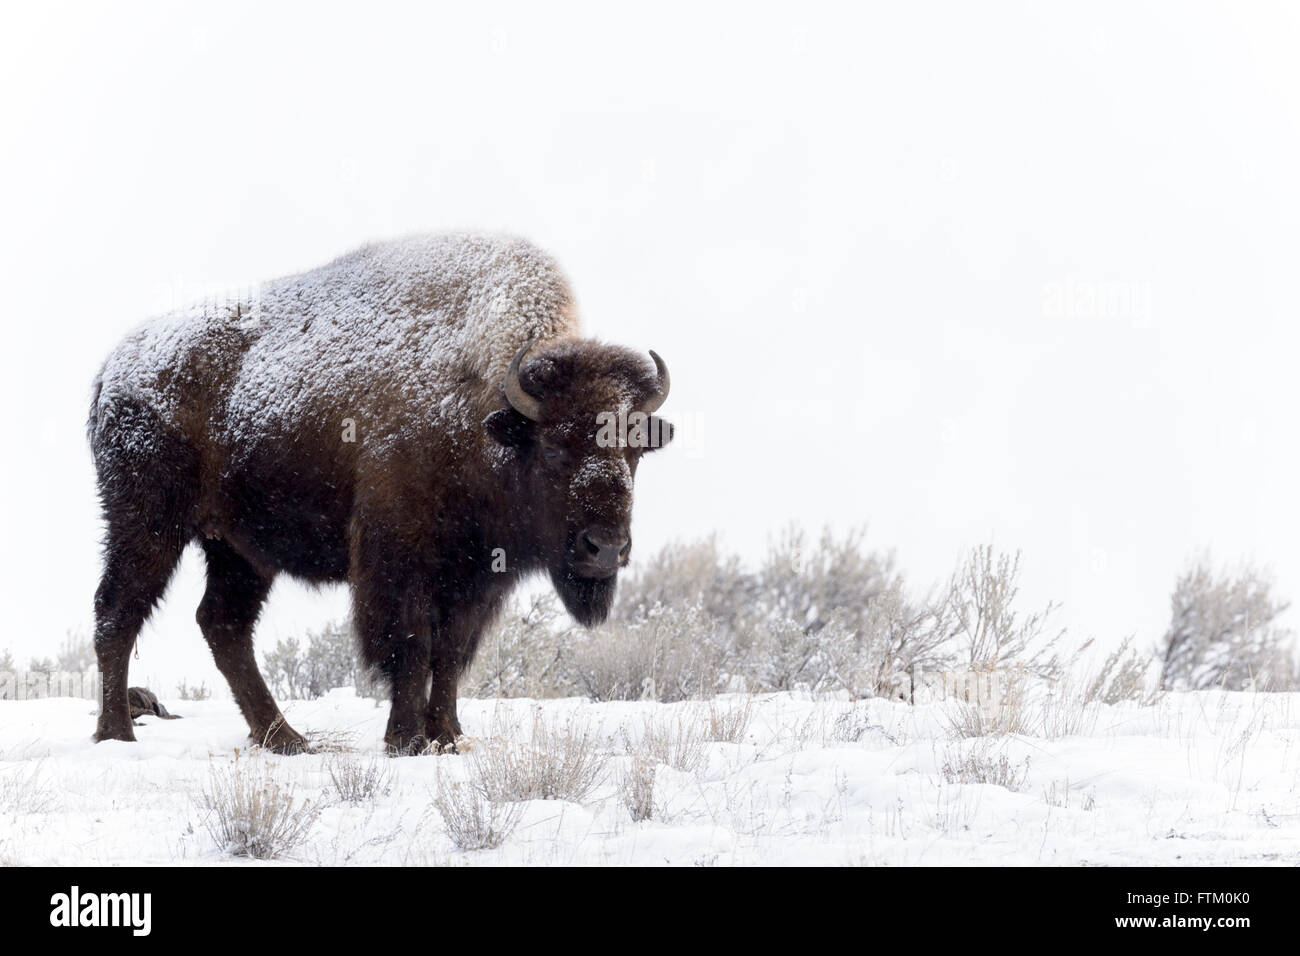 American Bison (Bison bison), standing in snow, Lamar Valley, Yellowstone National Park, Wyoming, Montana, USA Stock Photo